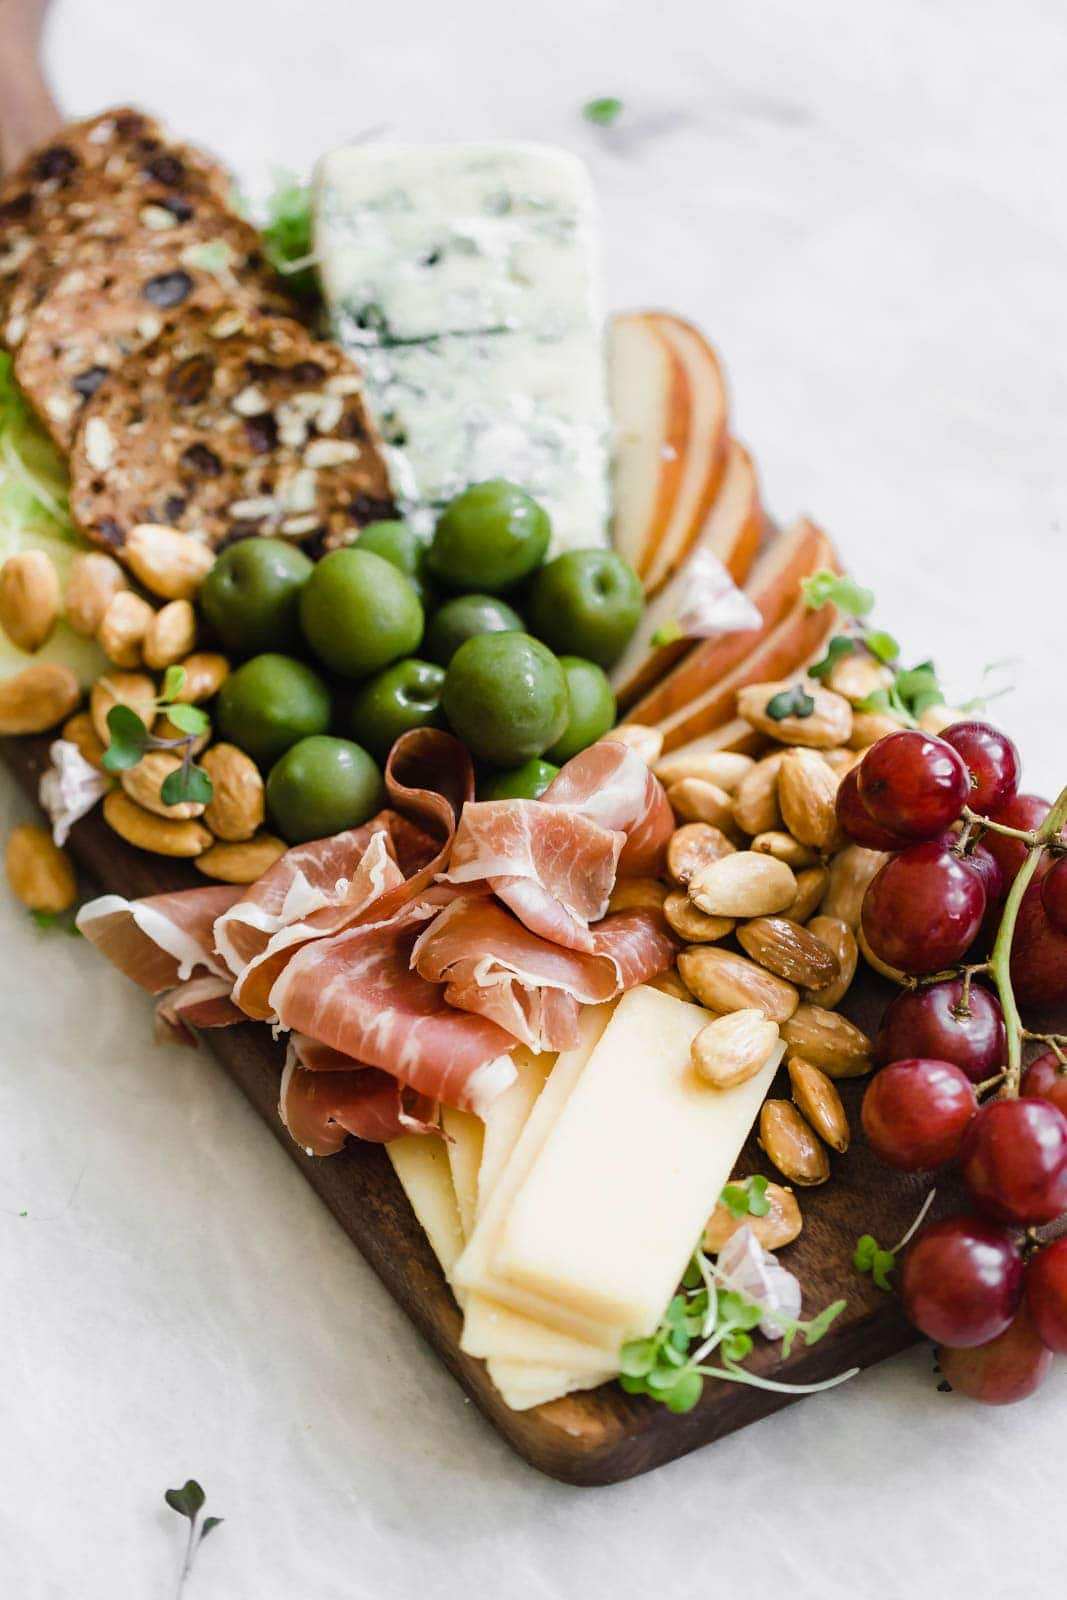 cheese board with olives, grapes, and prosciutto